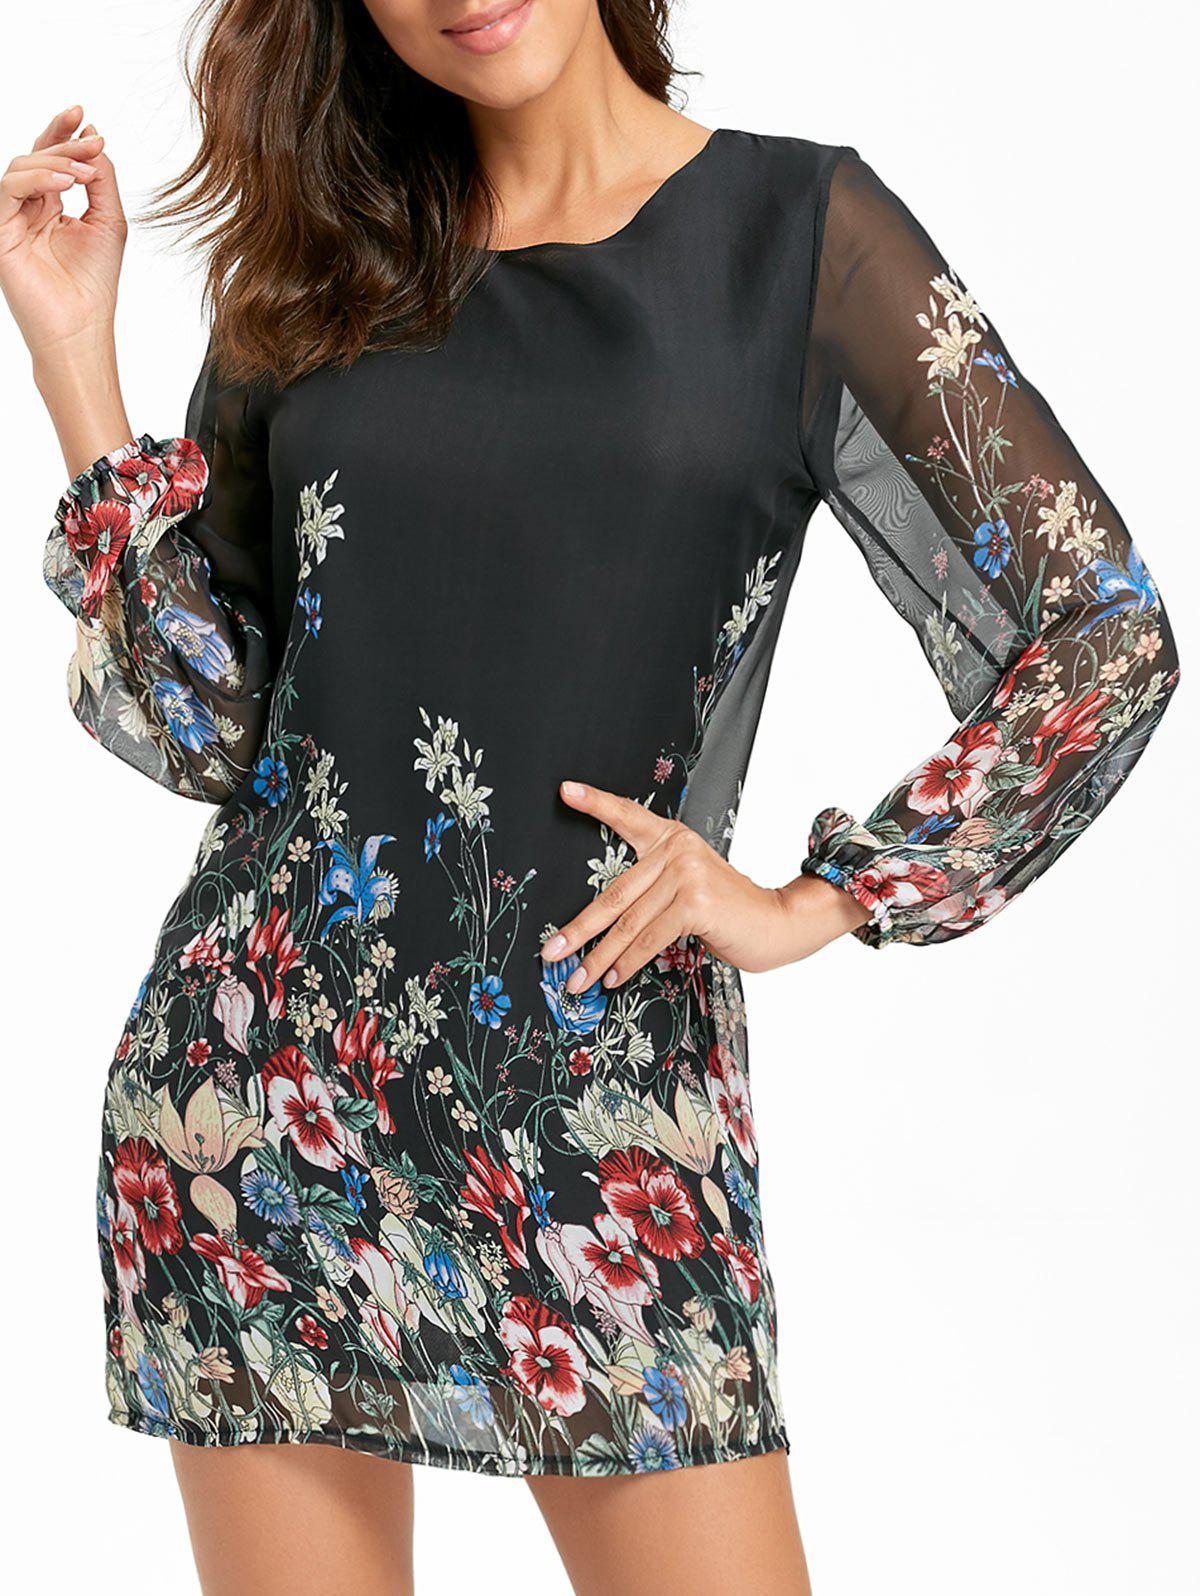 Sheer Long Sleeve Floral Chiffon Mini Dress - BLACK L